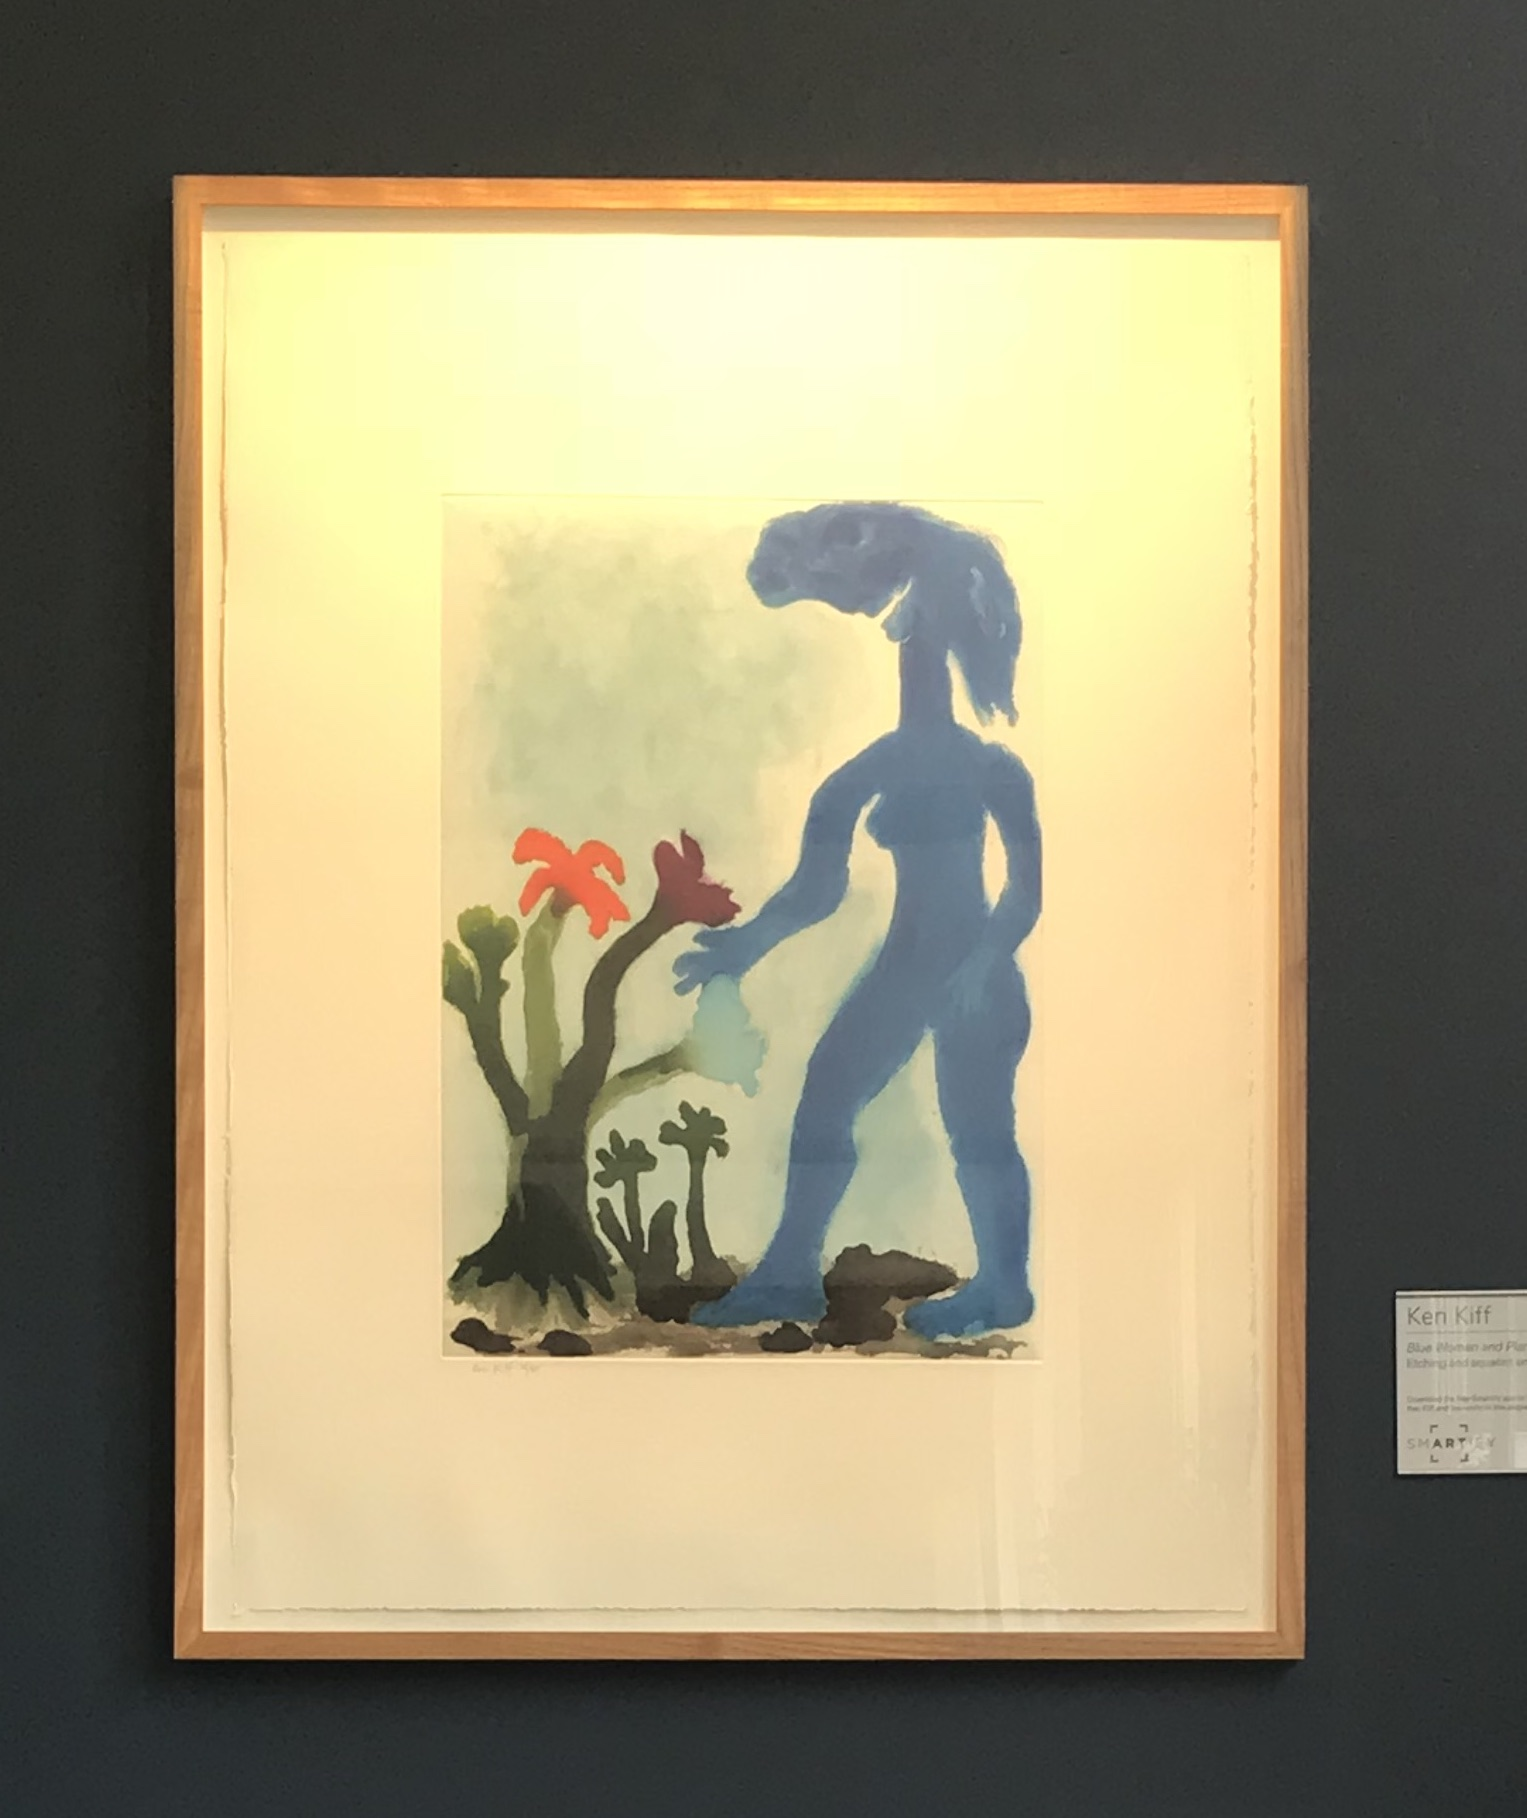 Blue Woman and Plant, 1996